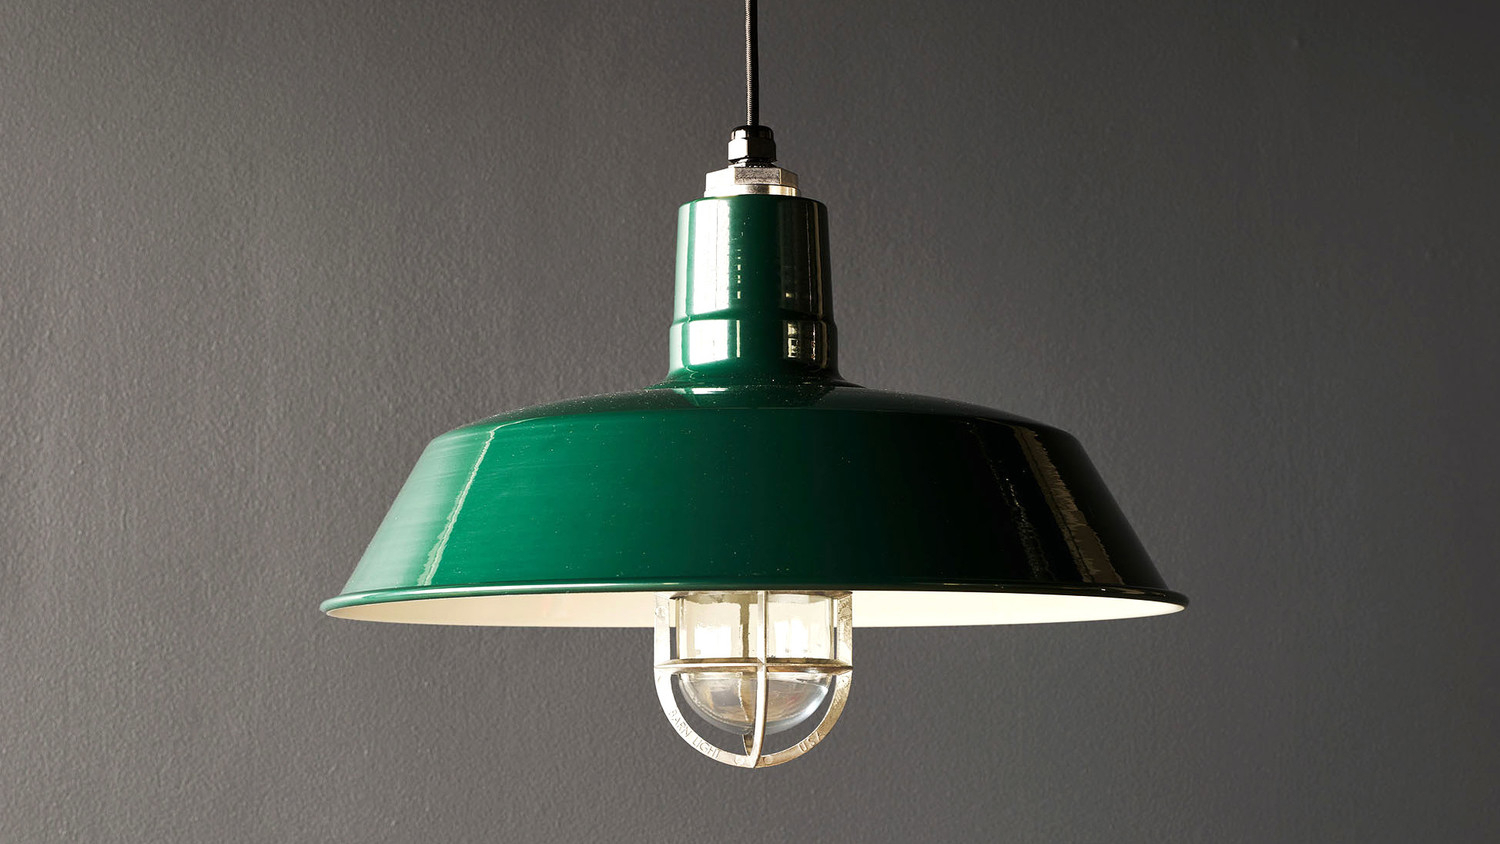 New Savings On Yarger 1 Light Single Bell Pendant Finish Throughout Yarger 1 Light Single Bell Pendants (View 19 of 30)